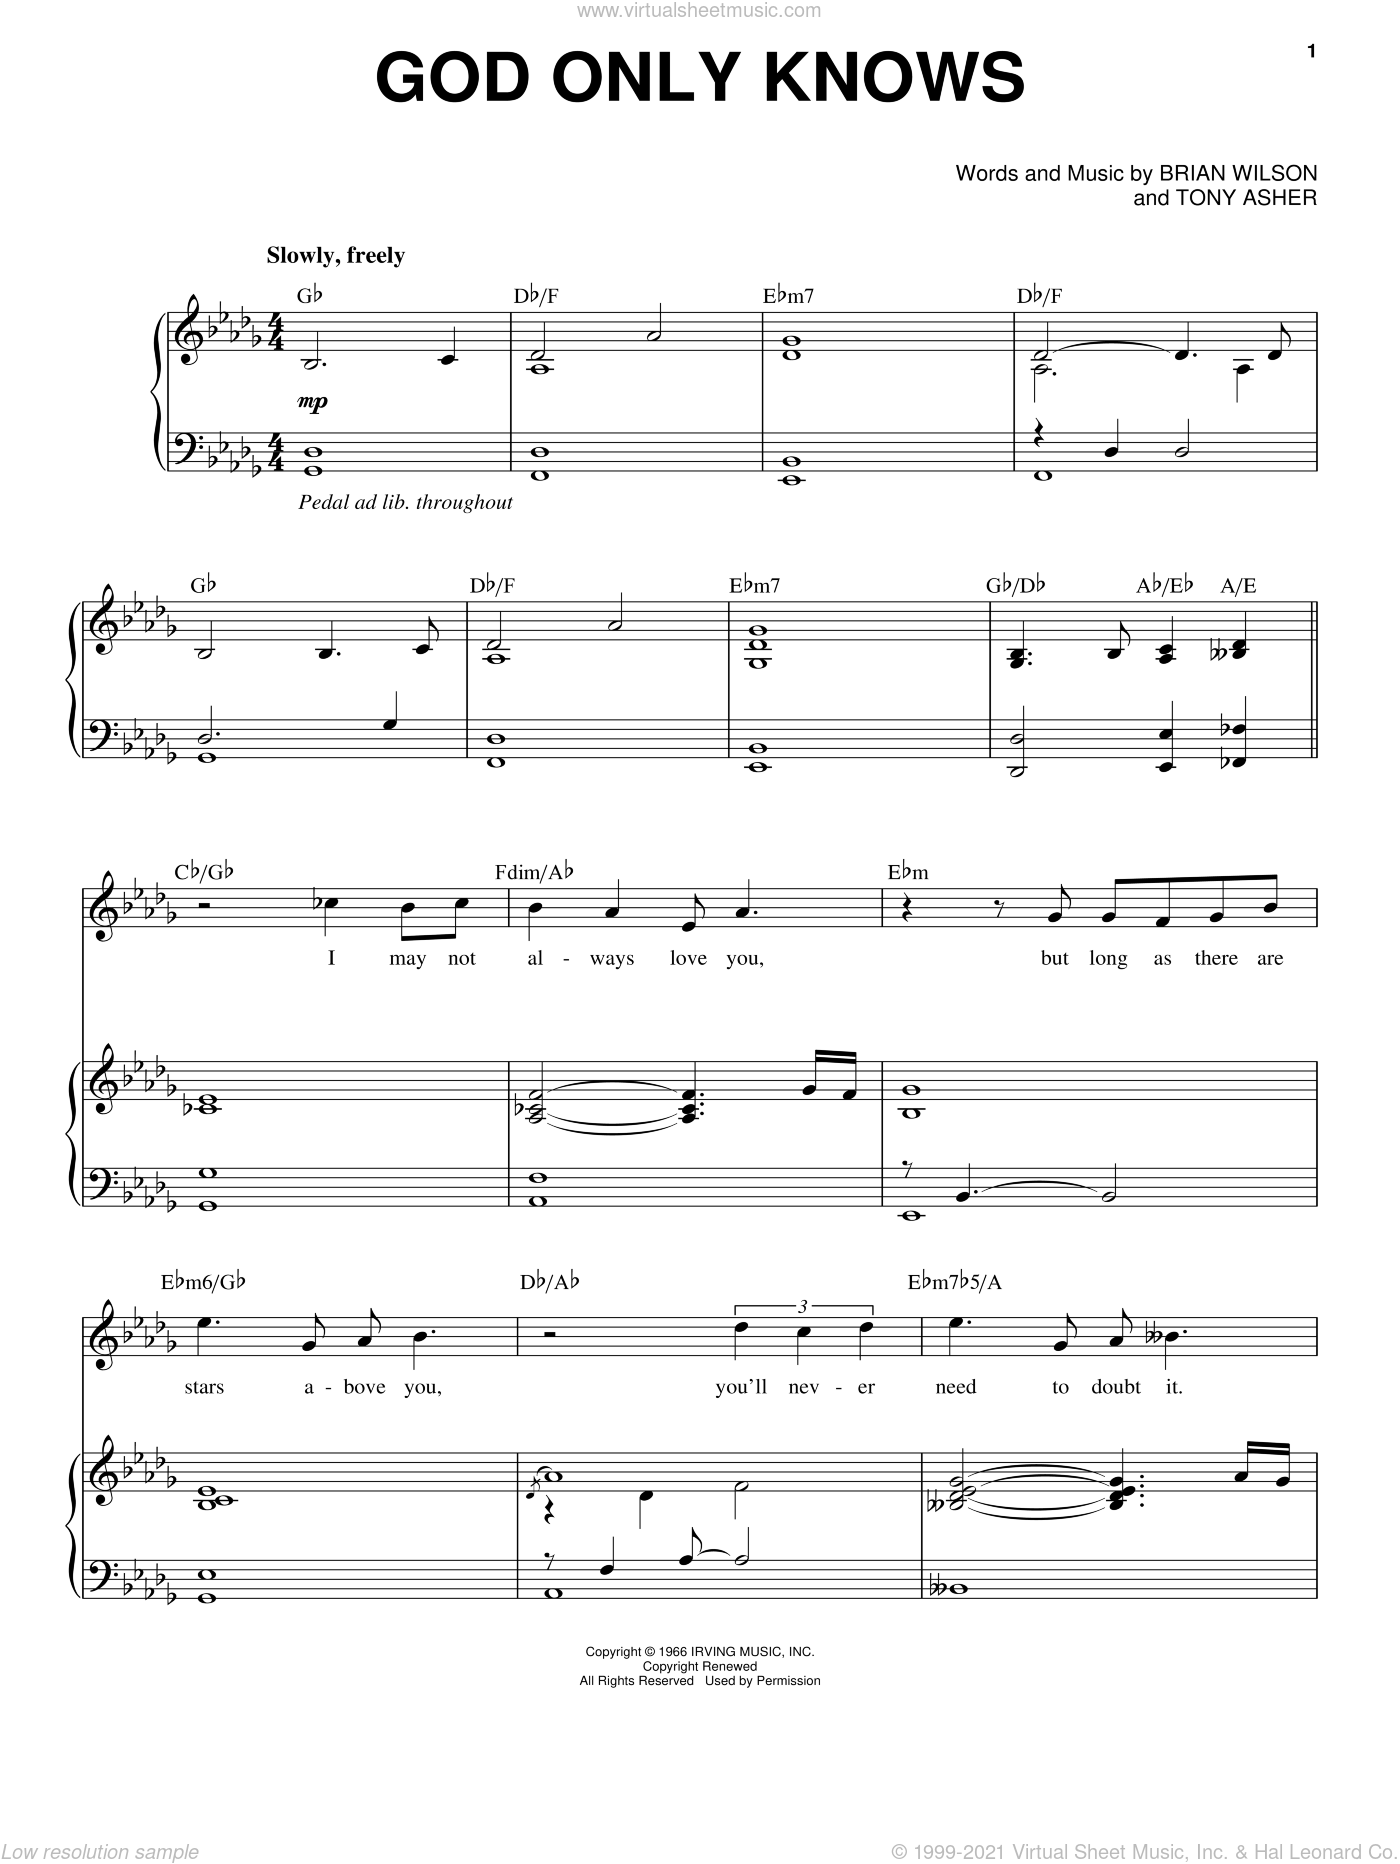 God Only Knows sheet music for voice and piano by Michael Buble, The Beach Boys, Brian Wilson and Tony Asher, intermediate skill level